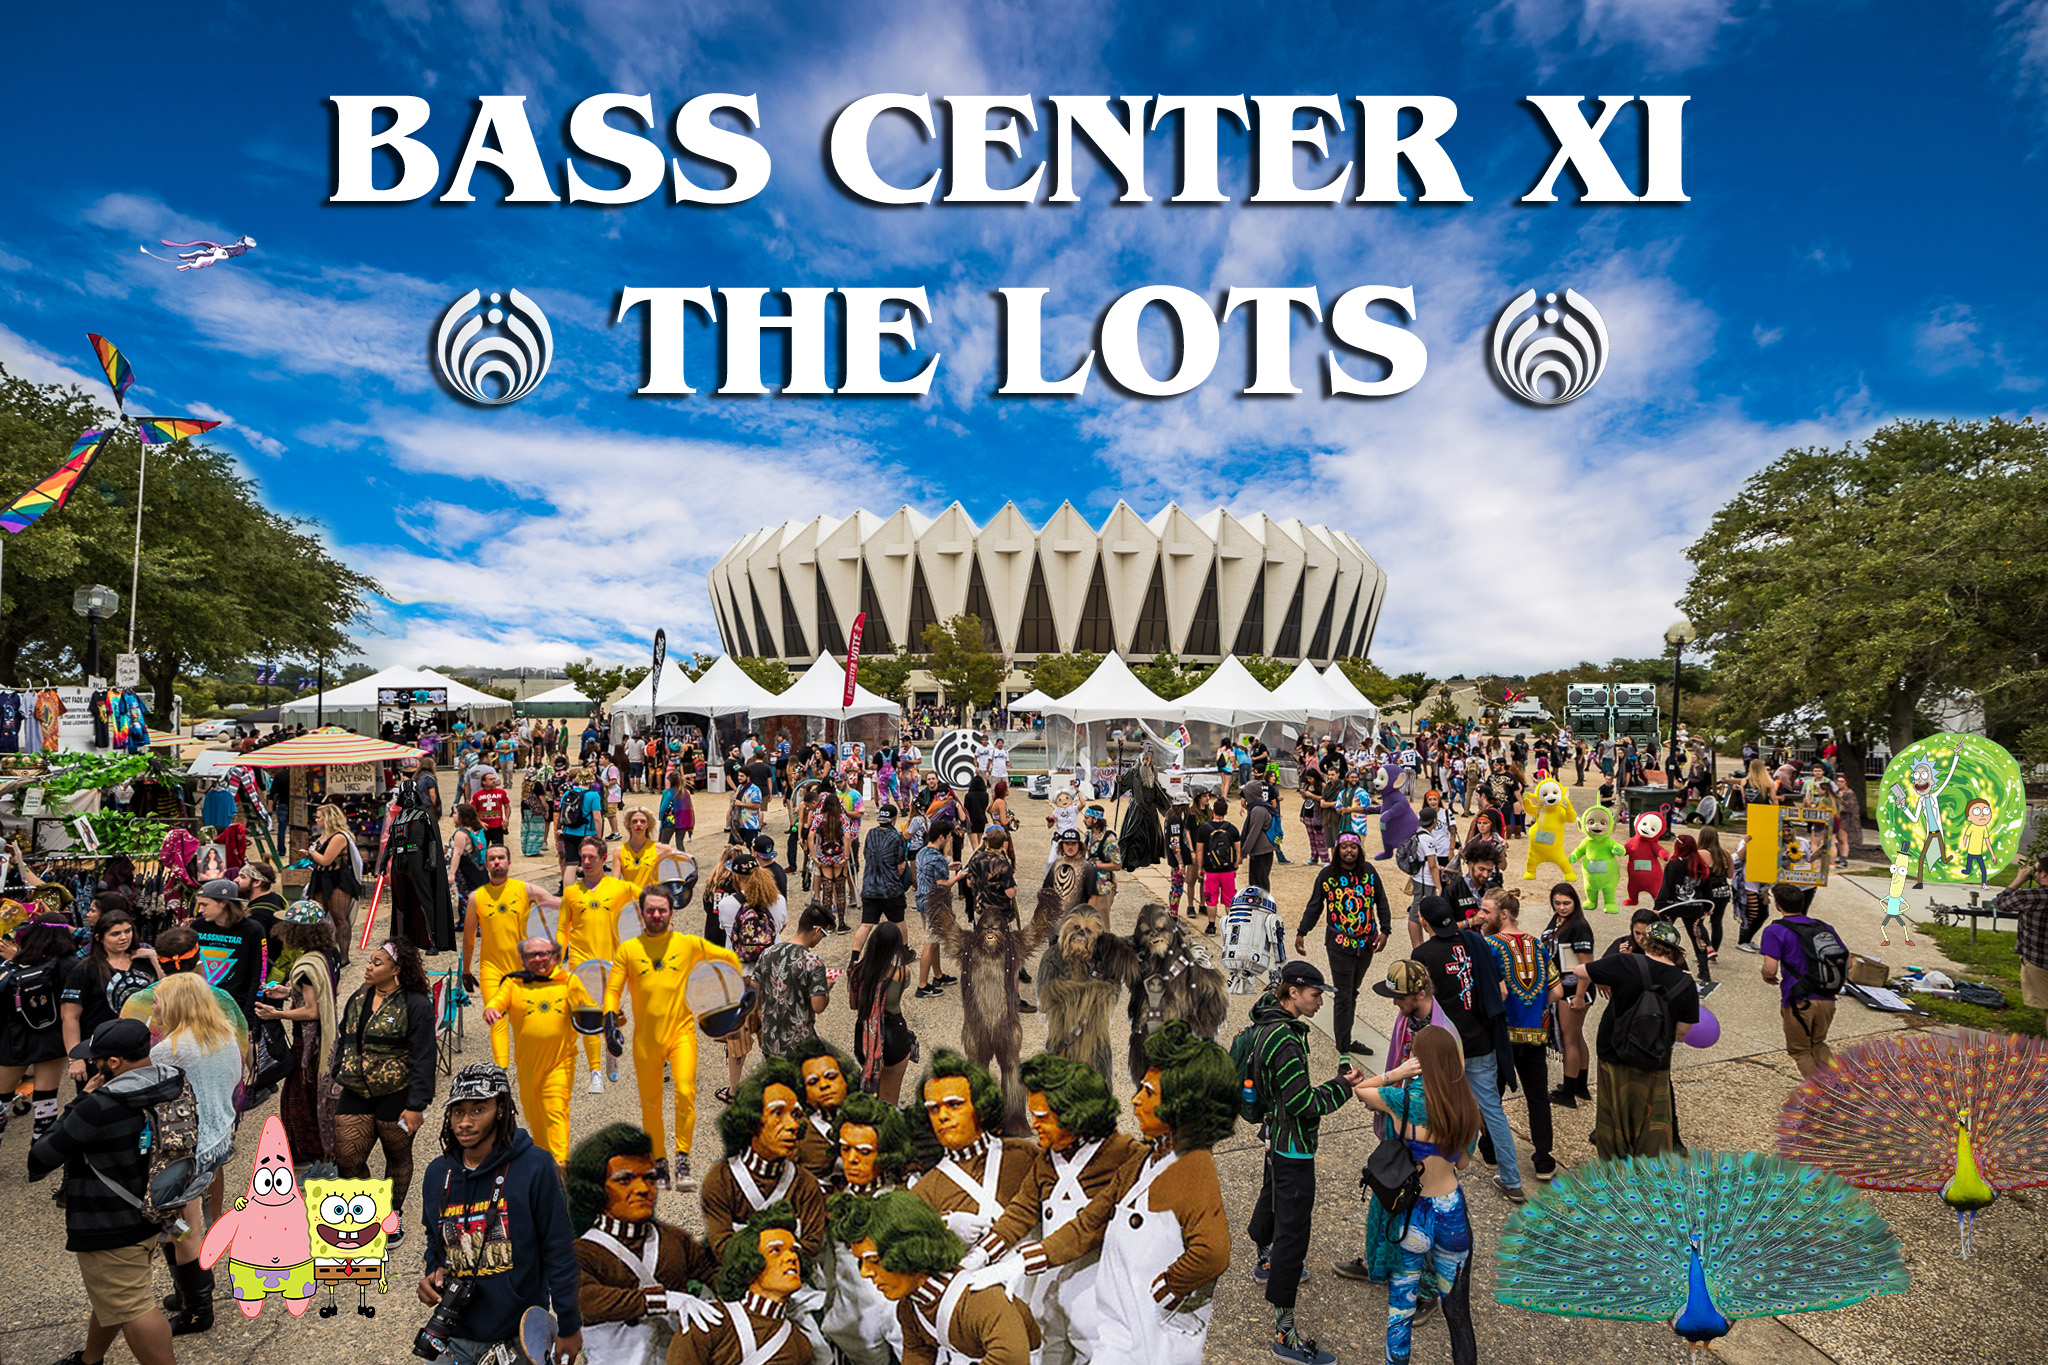 THE LOTS @ BASS CENTER XI